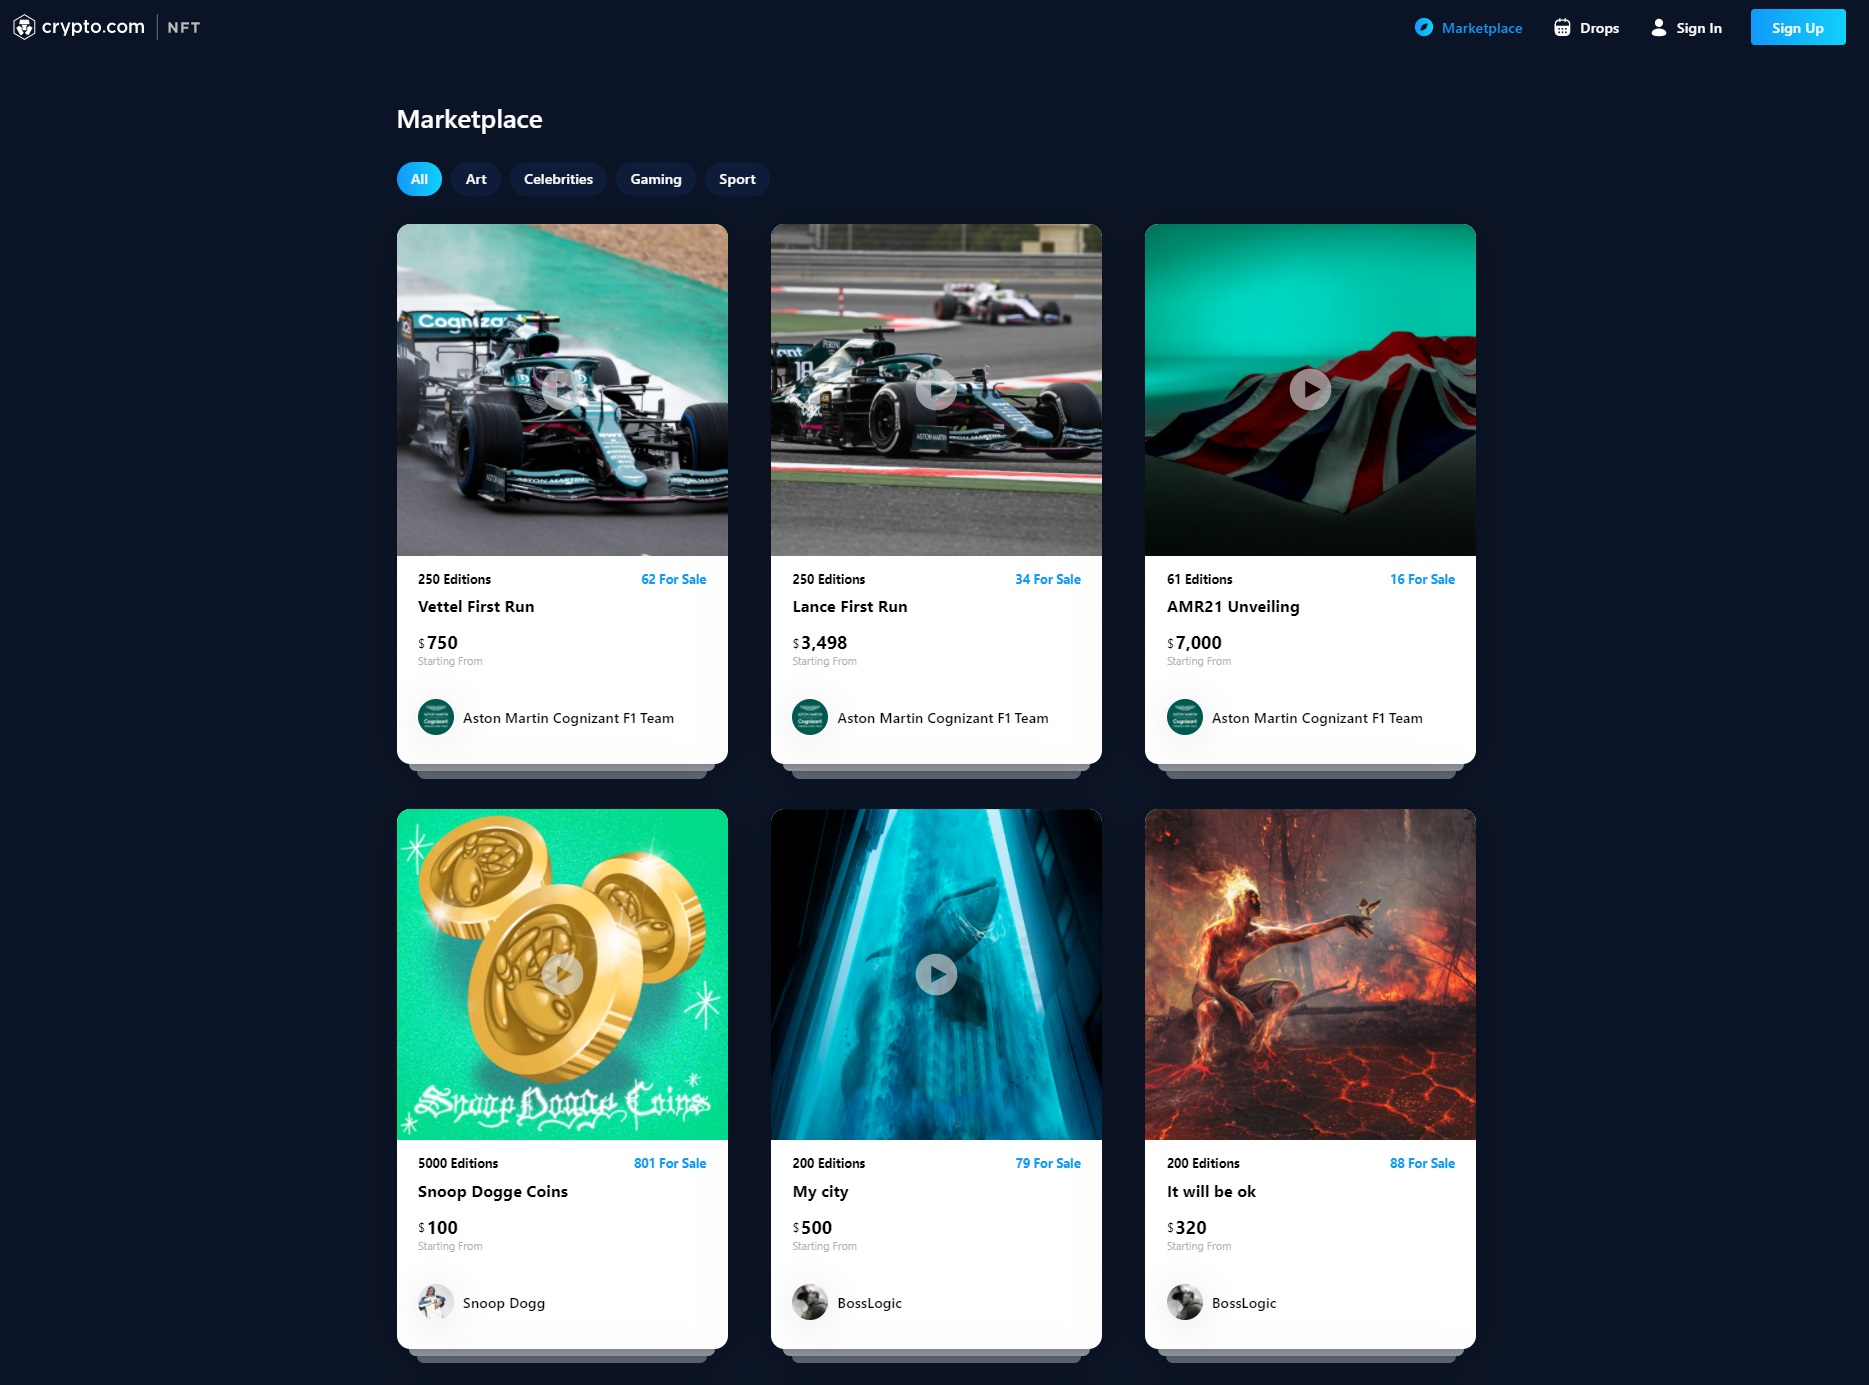 Crypto.com NFT Marketplace General Layout